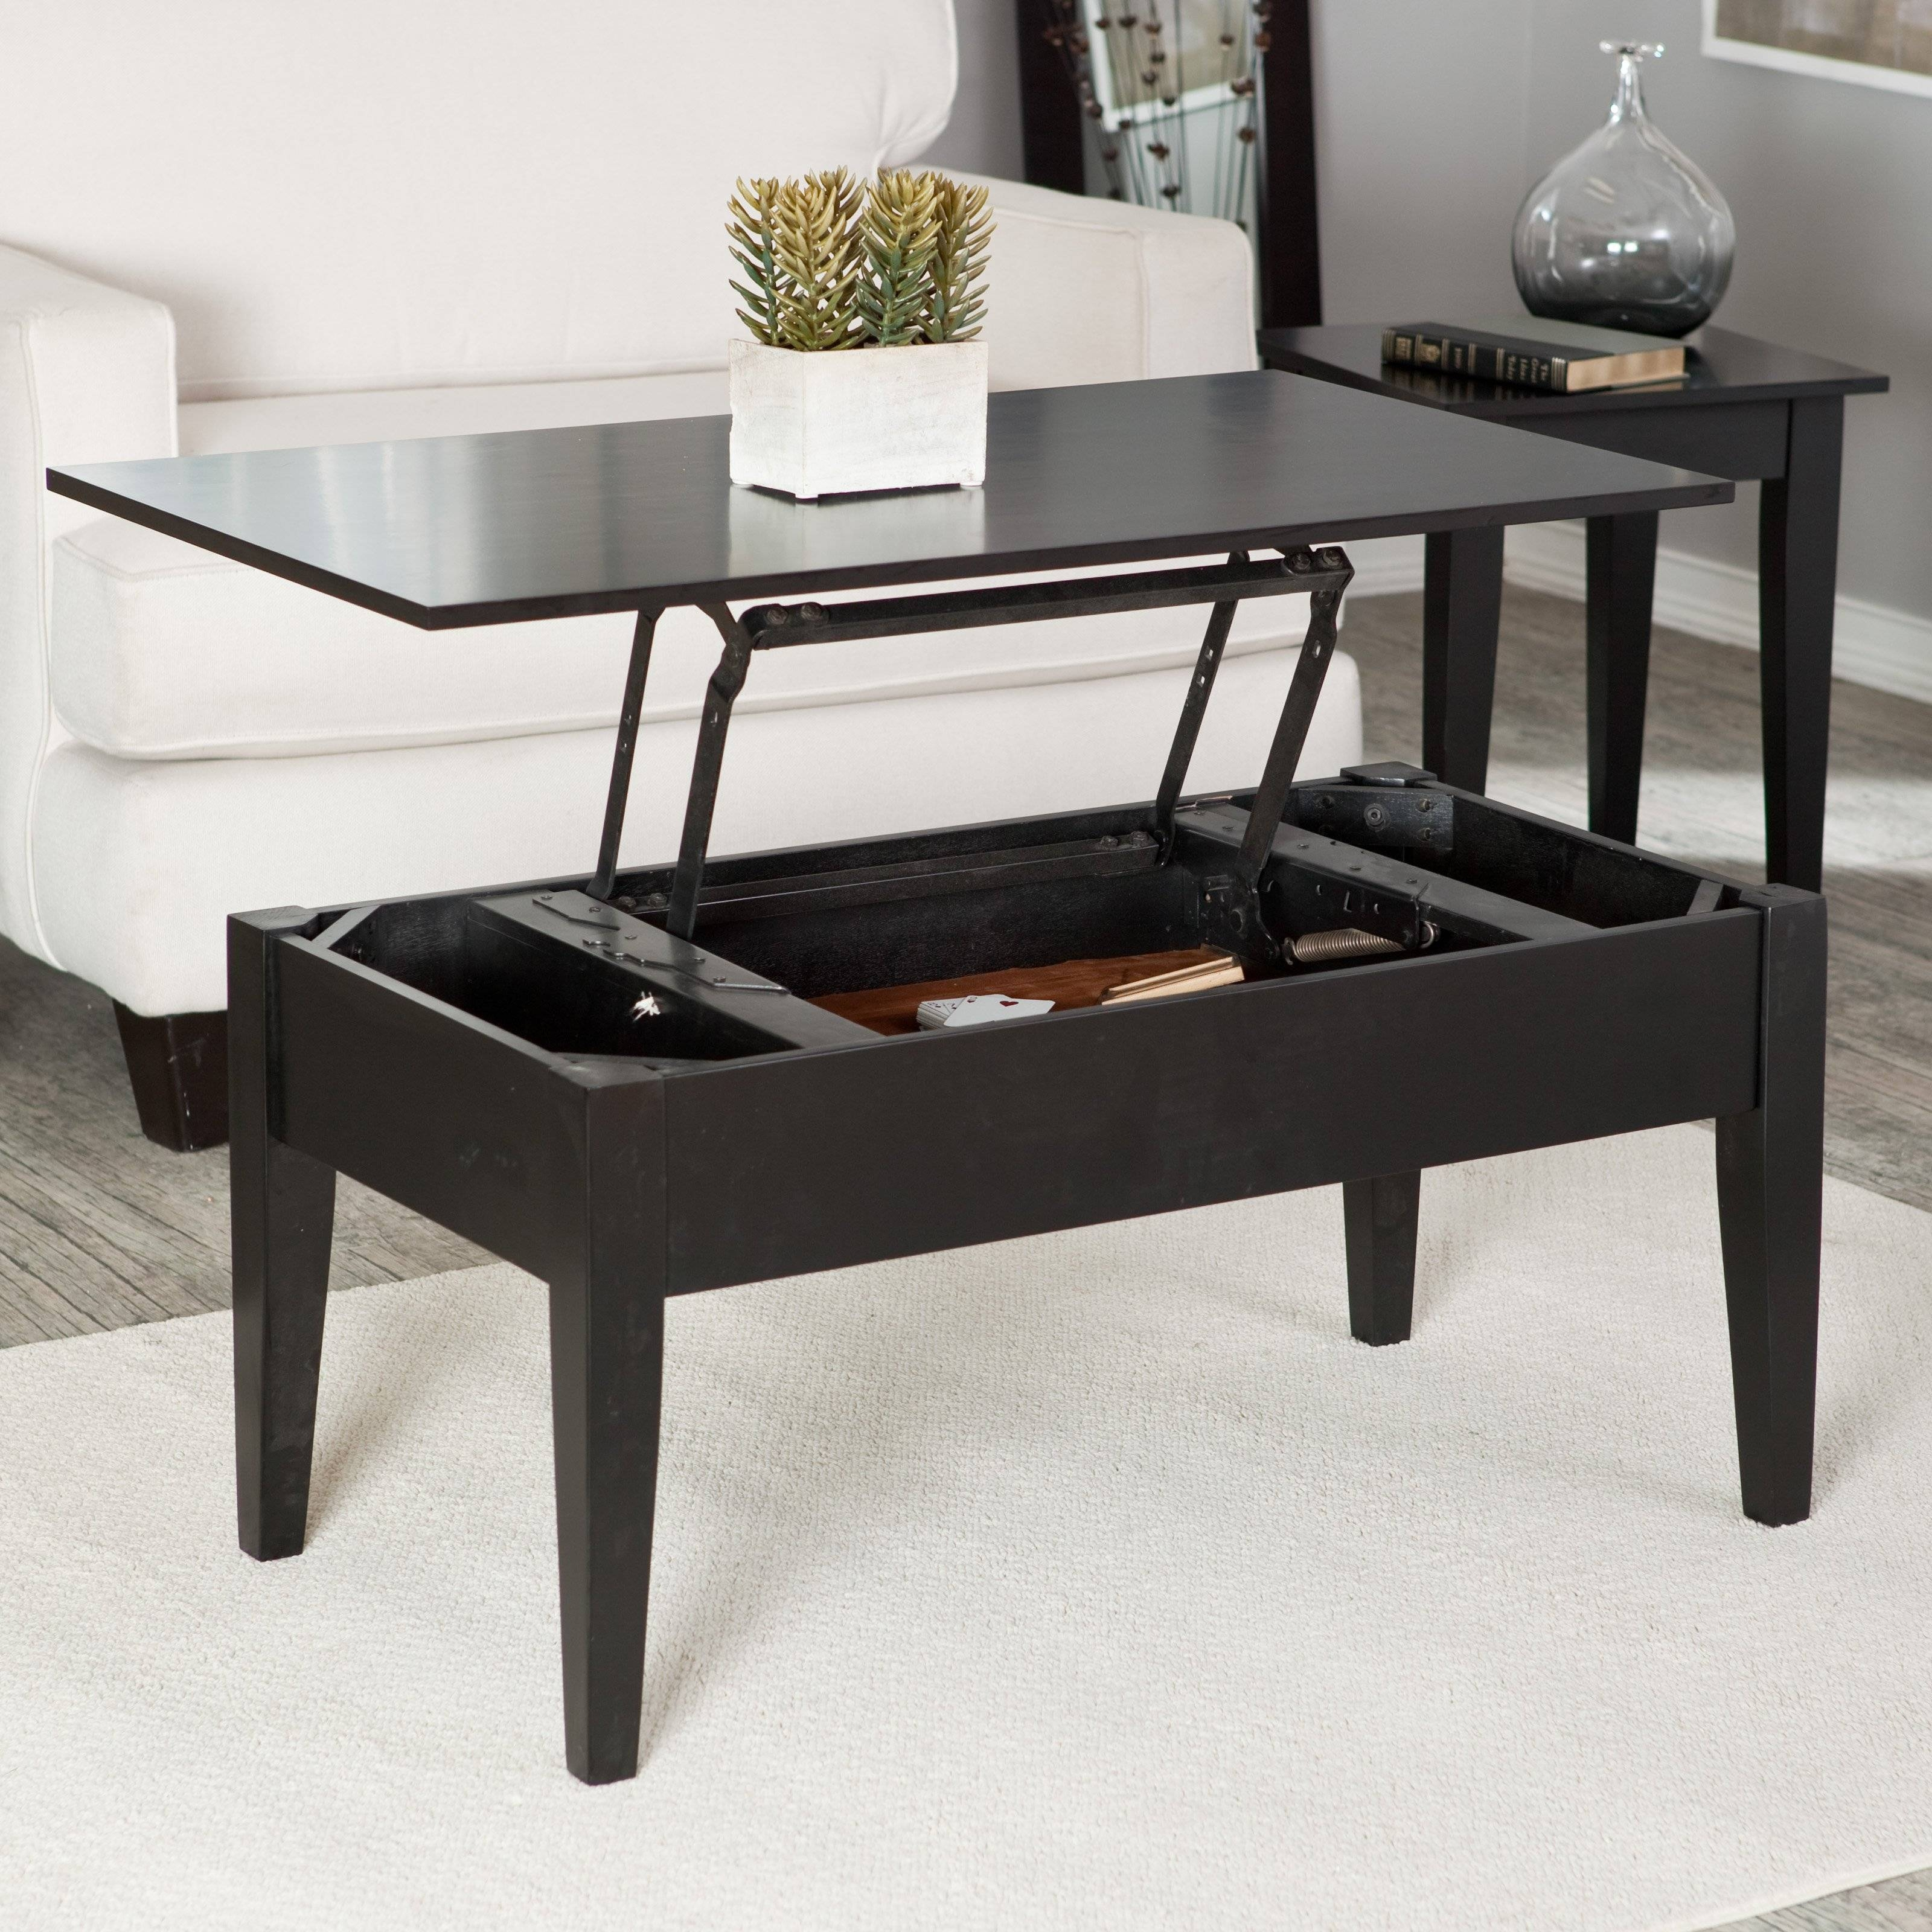 Turner Lift Top Coffee Table - Espresso | Hayneedle throughout Coffee Tables With Lifting Top (Image 27 of 30)